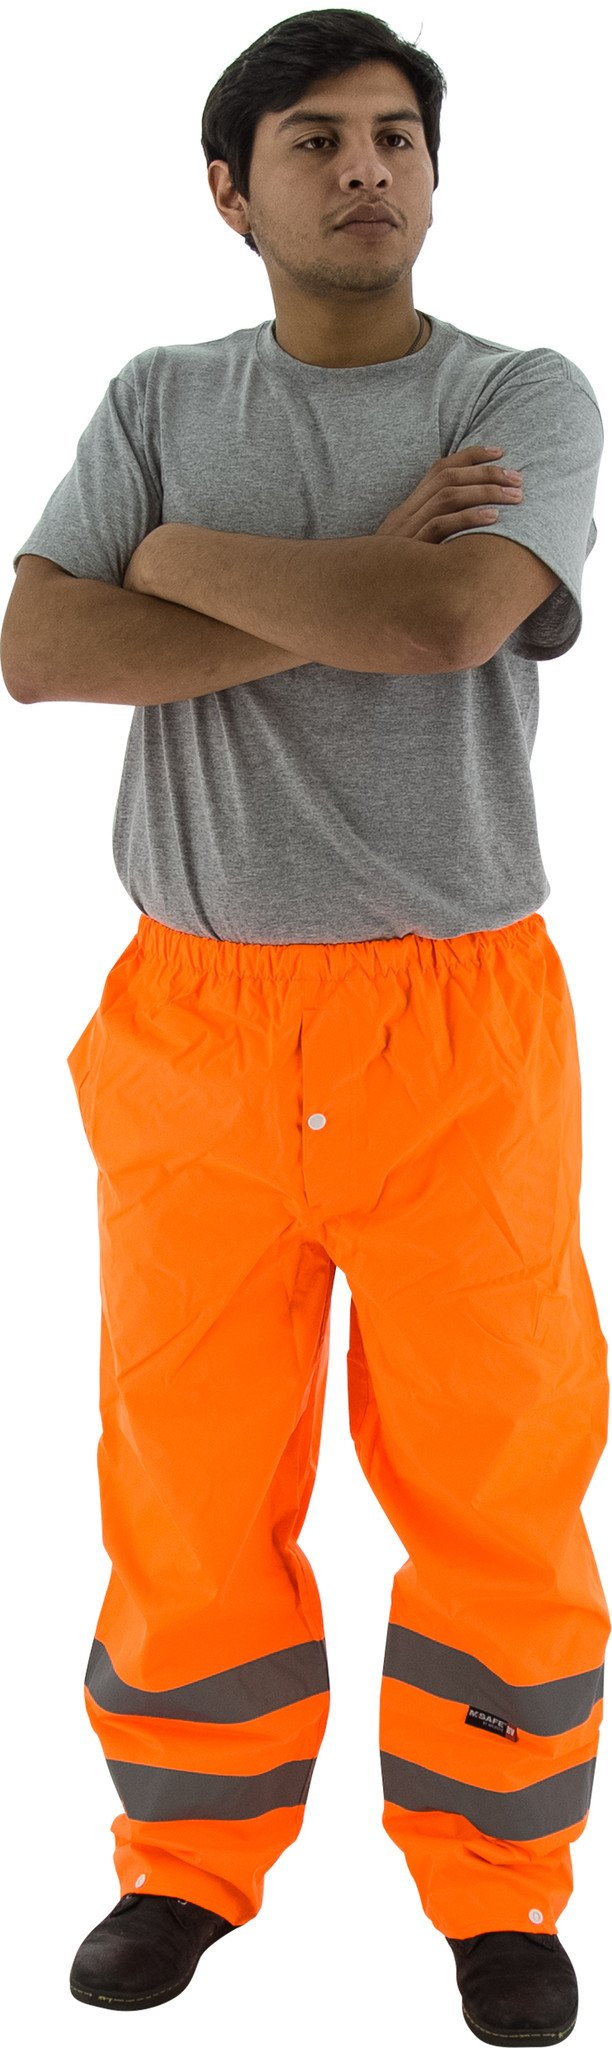 Majestic 75-2352 Hi Vis Orange Trousers ANSI Class E Unlined: Global Construction Supply